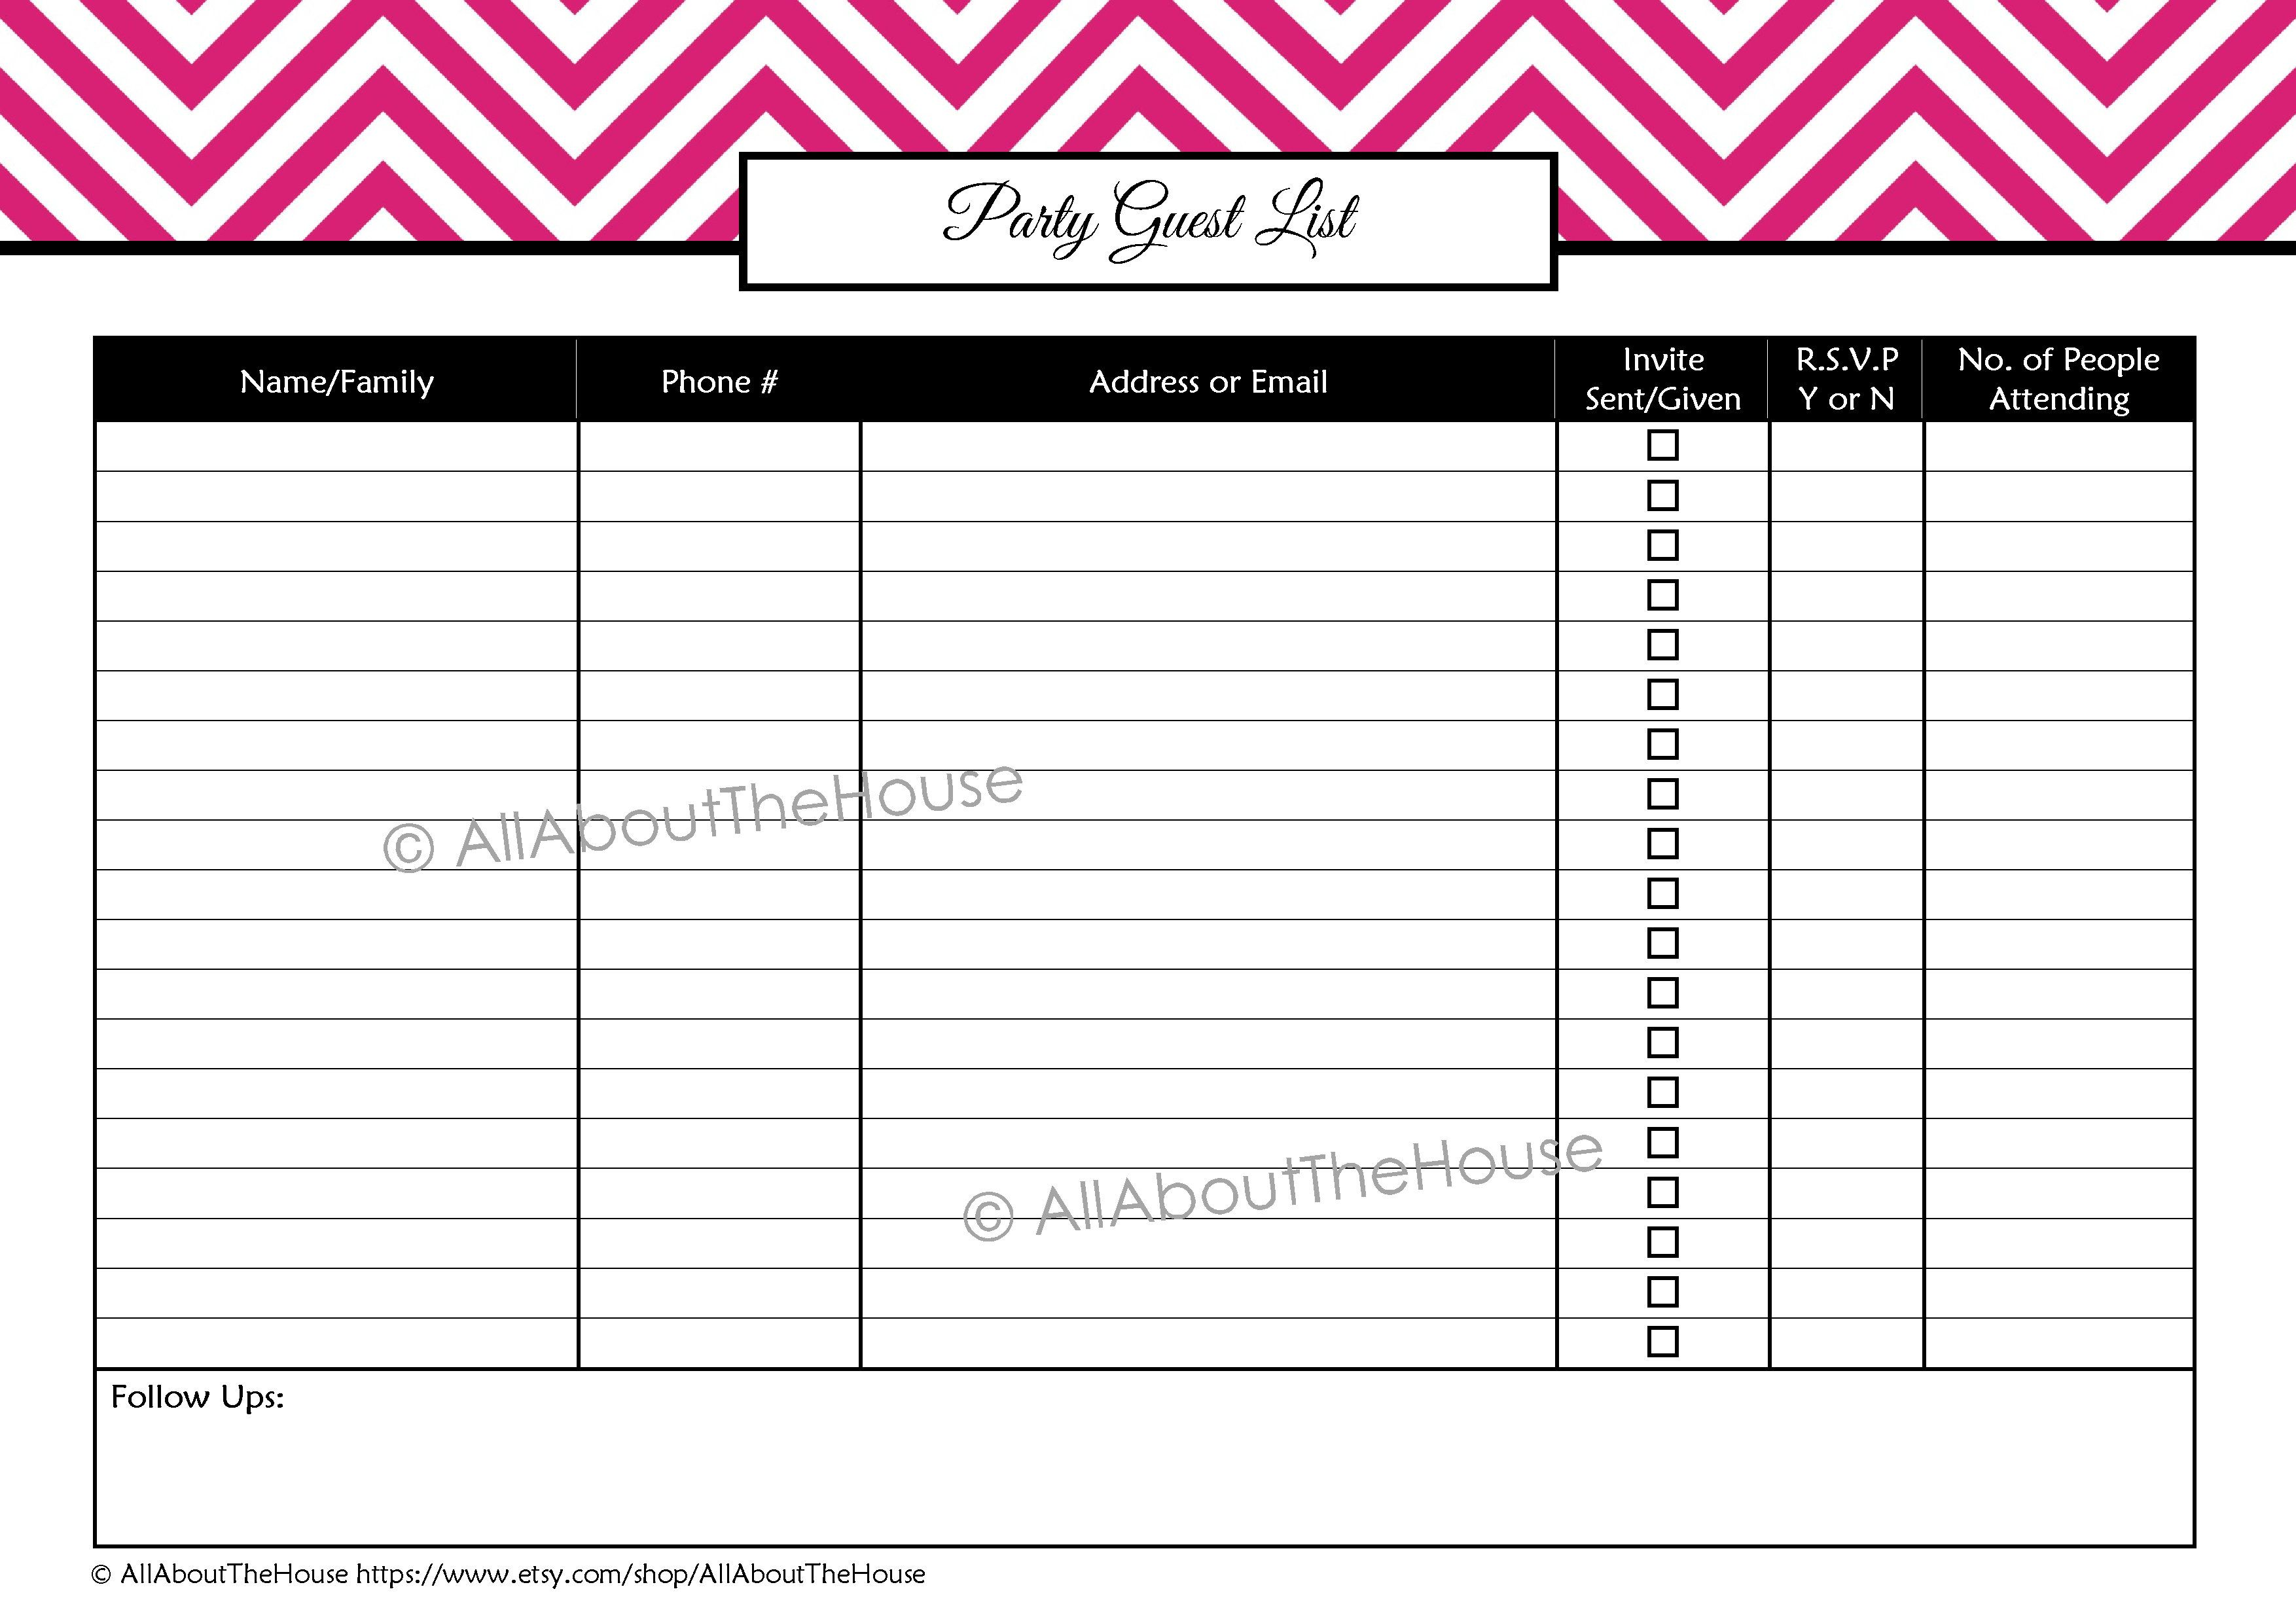 006 Unique Party Guest List Template Excel Free Picture Full